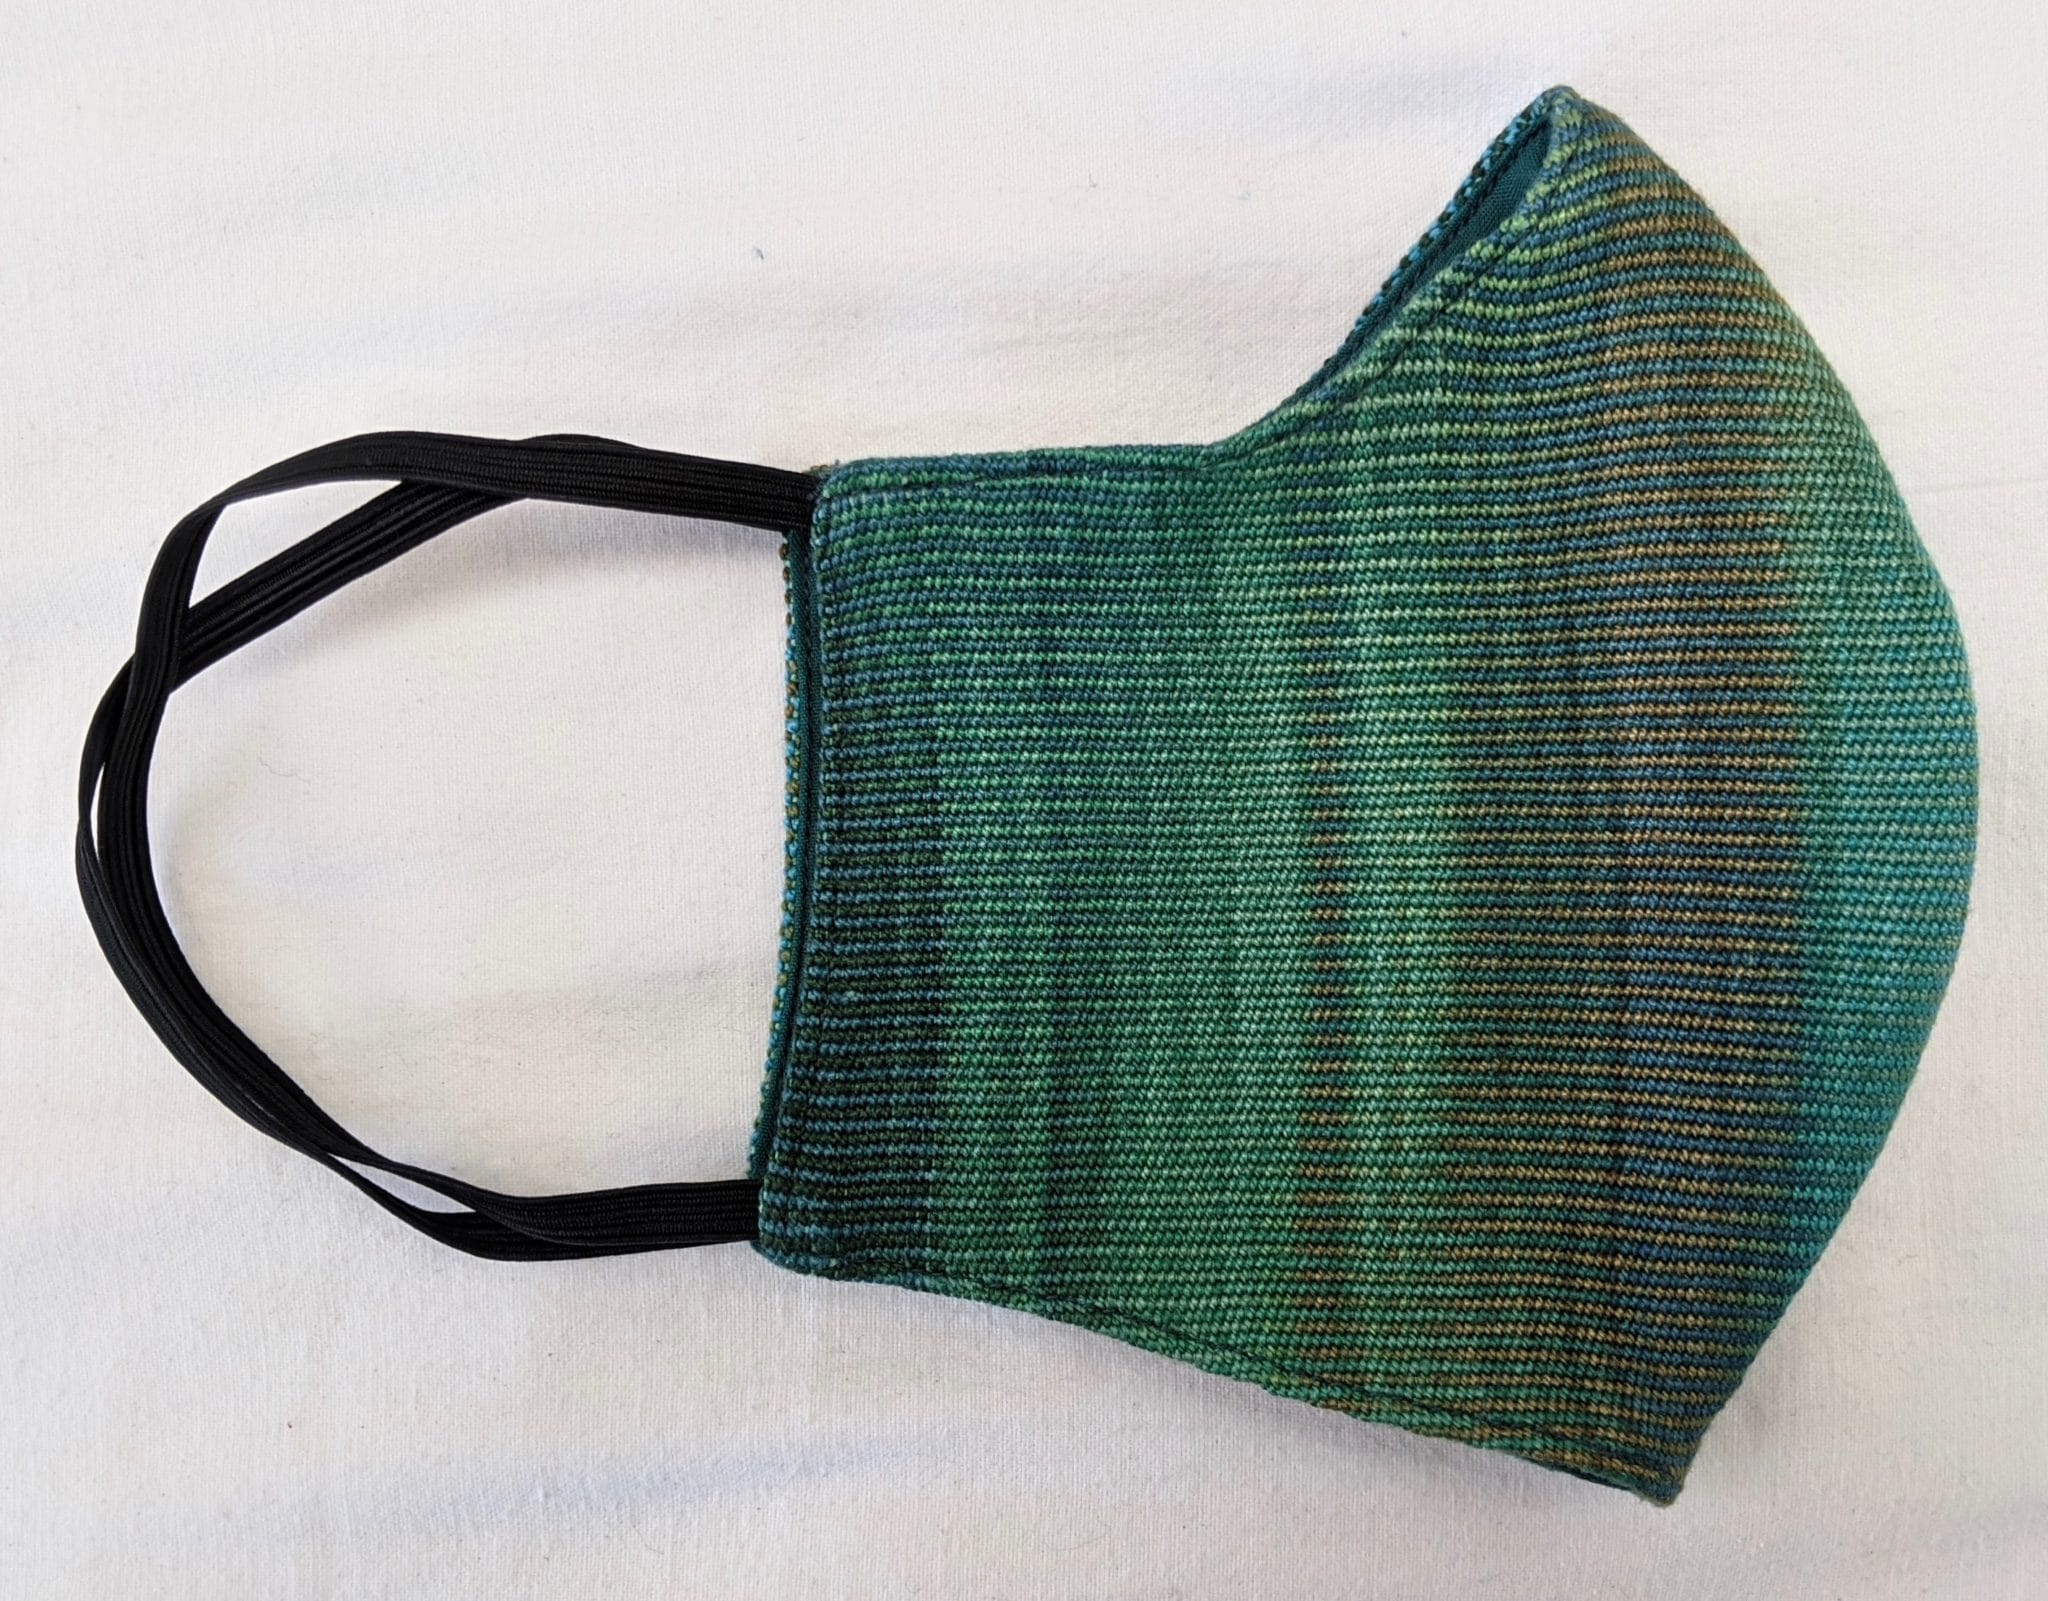 Handwoven Lightweight Bamboo Face Mask with Elastic Behind Ears - Greens, Blue, Coffee